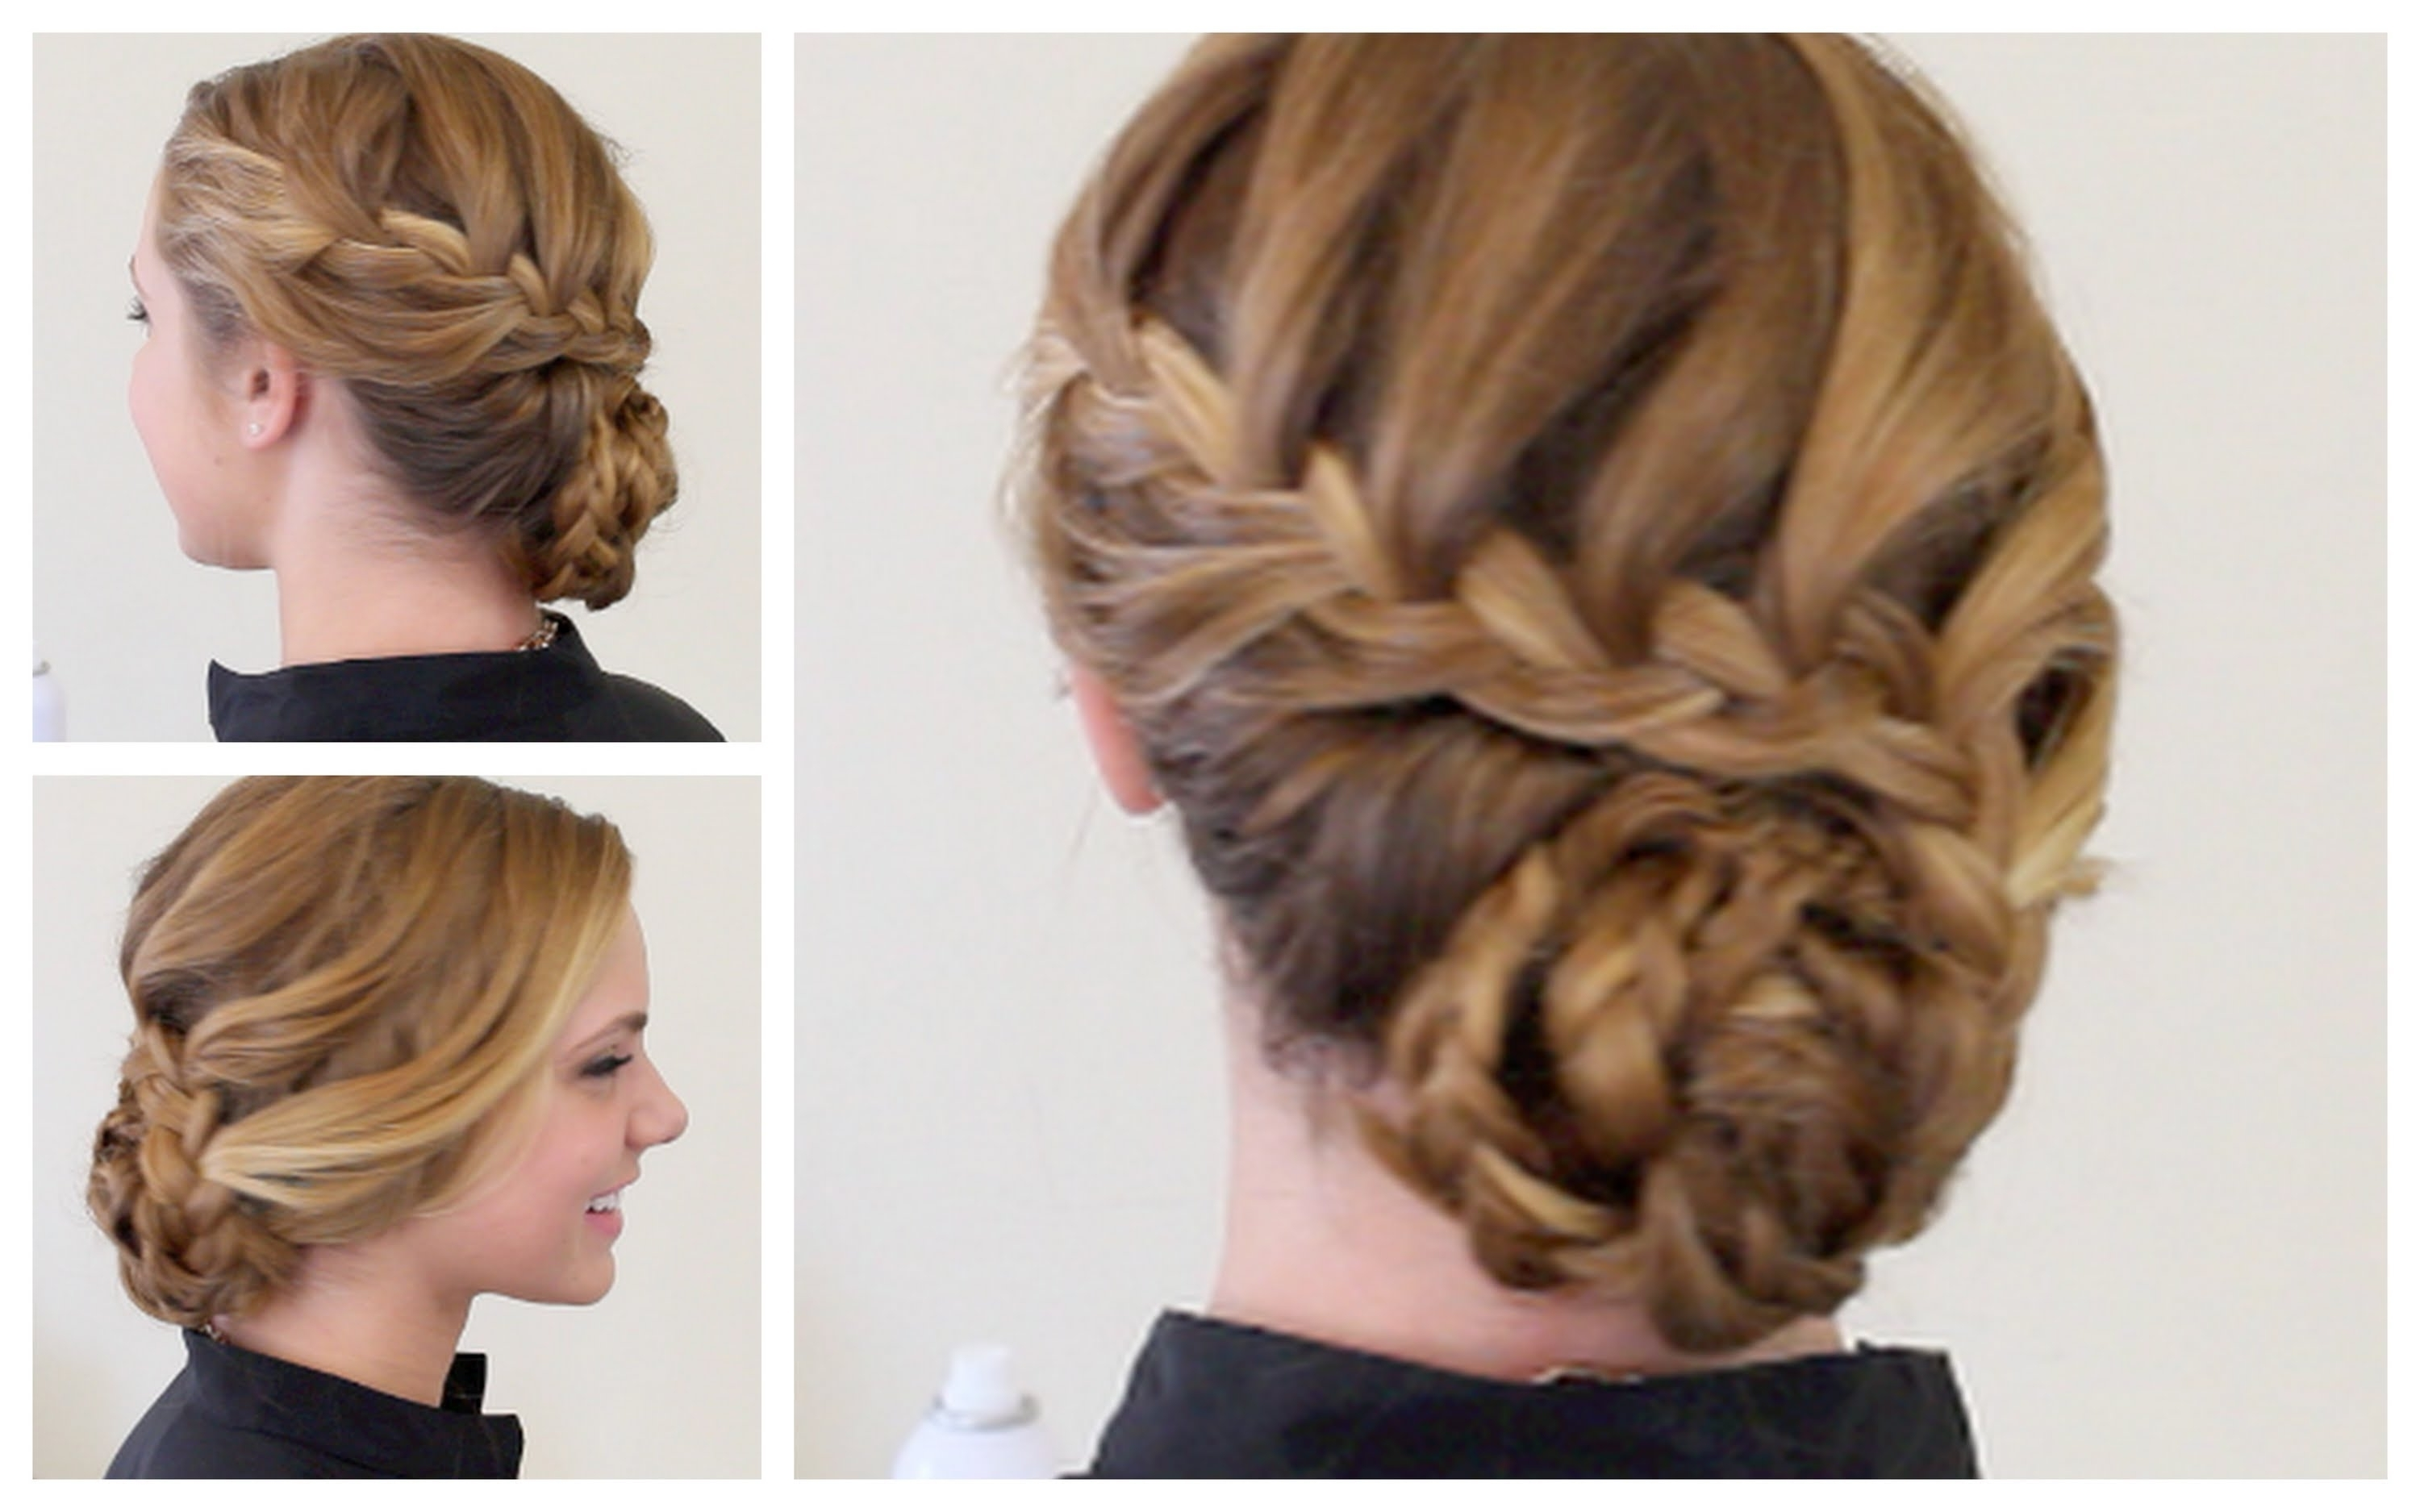 Updo Hairstyles Braided Formal Updo Youtube Intended For Braided Updo Hairstyles (View 15 of 15)